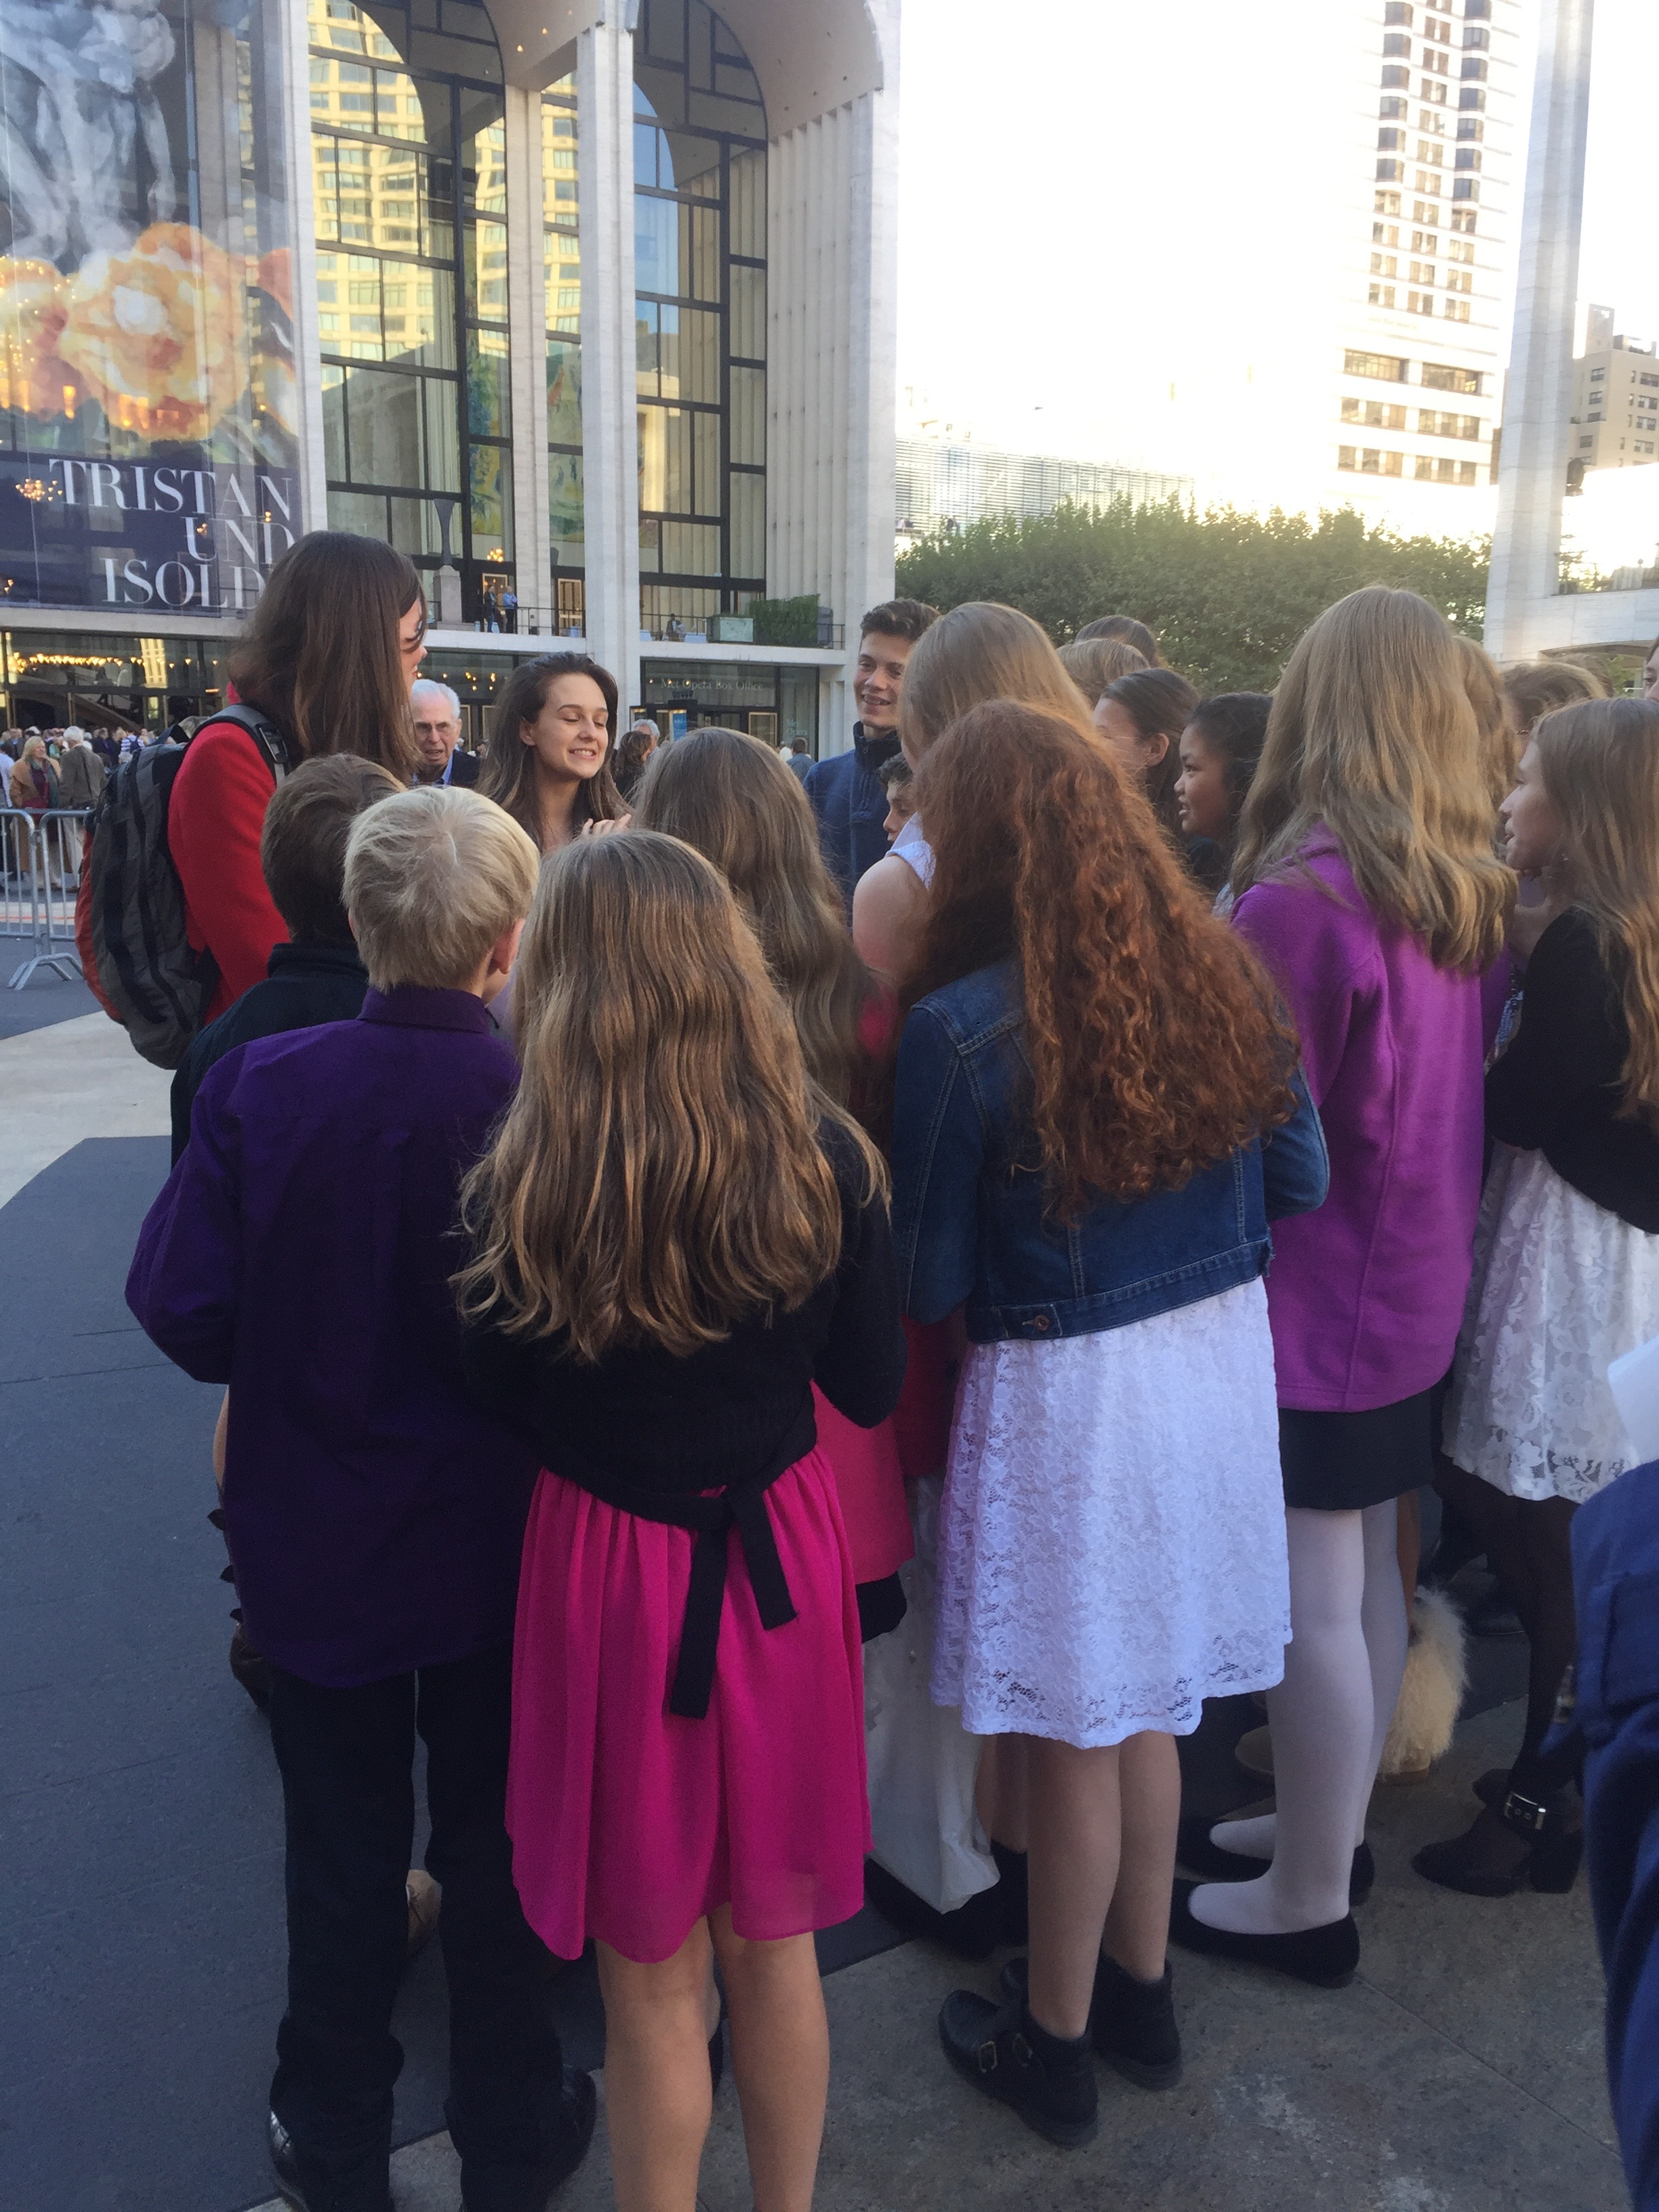 Lauren visits with some aspiring dancers and fans after a show, telling them about PerfectFit.